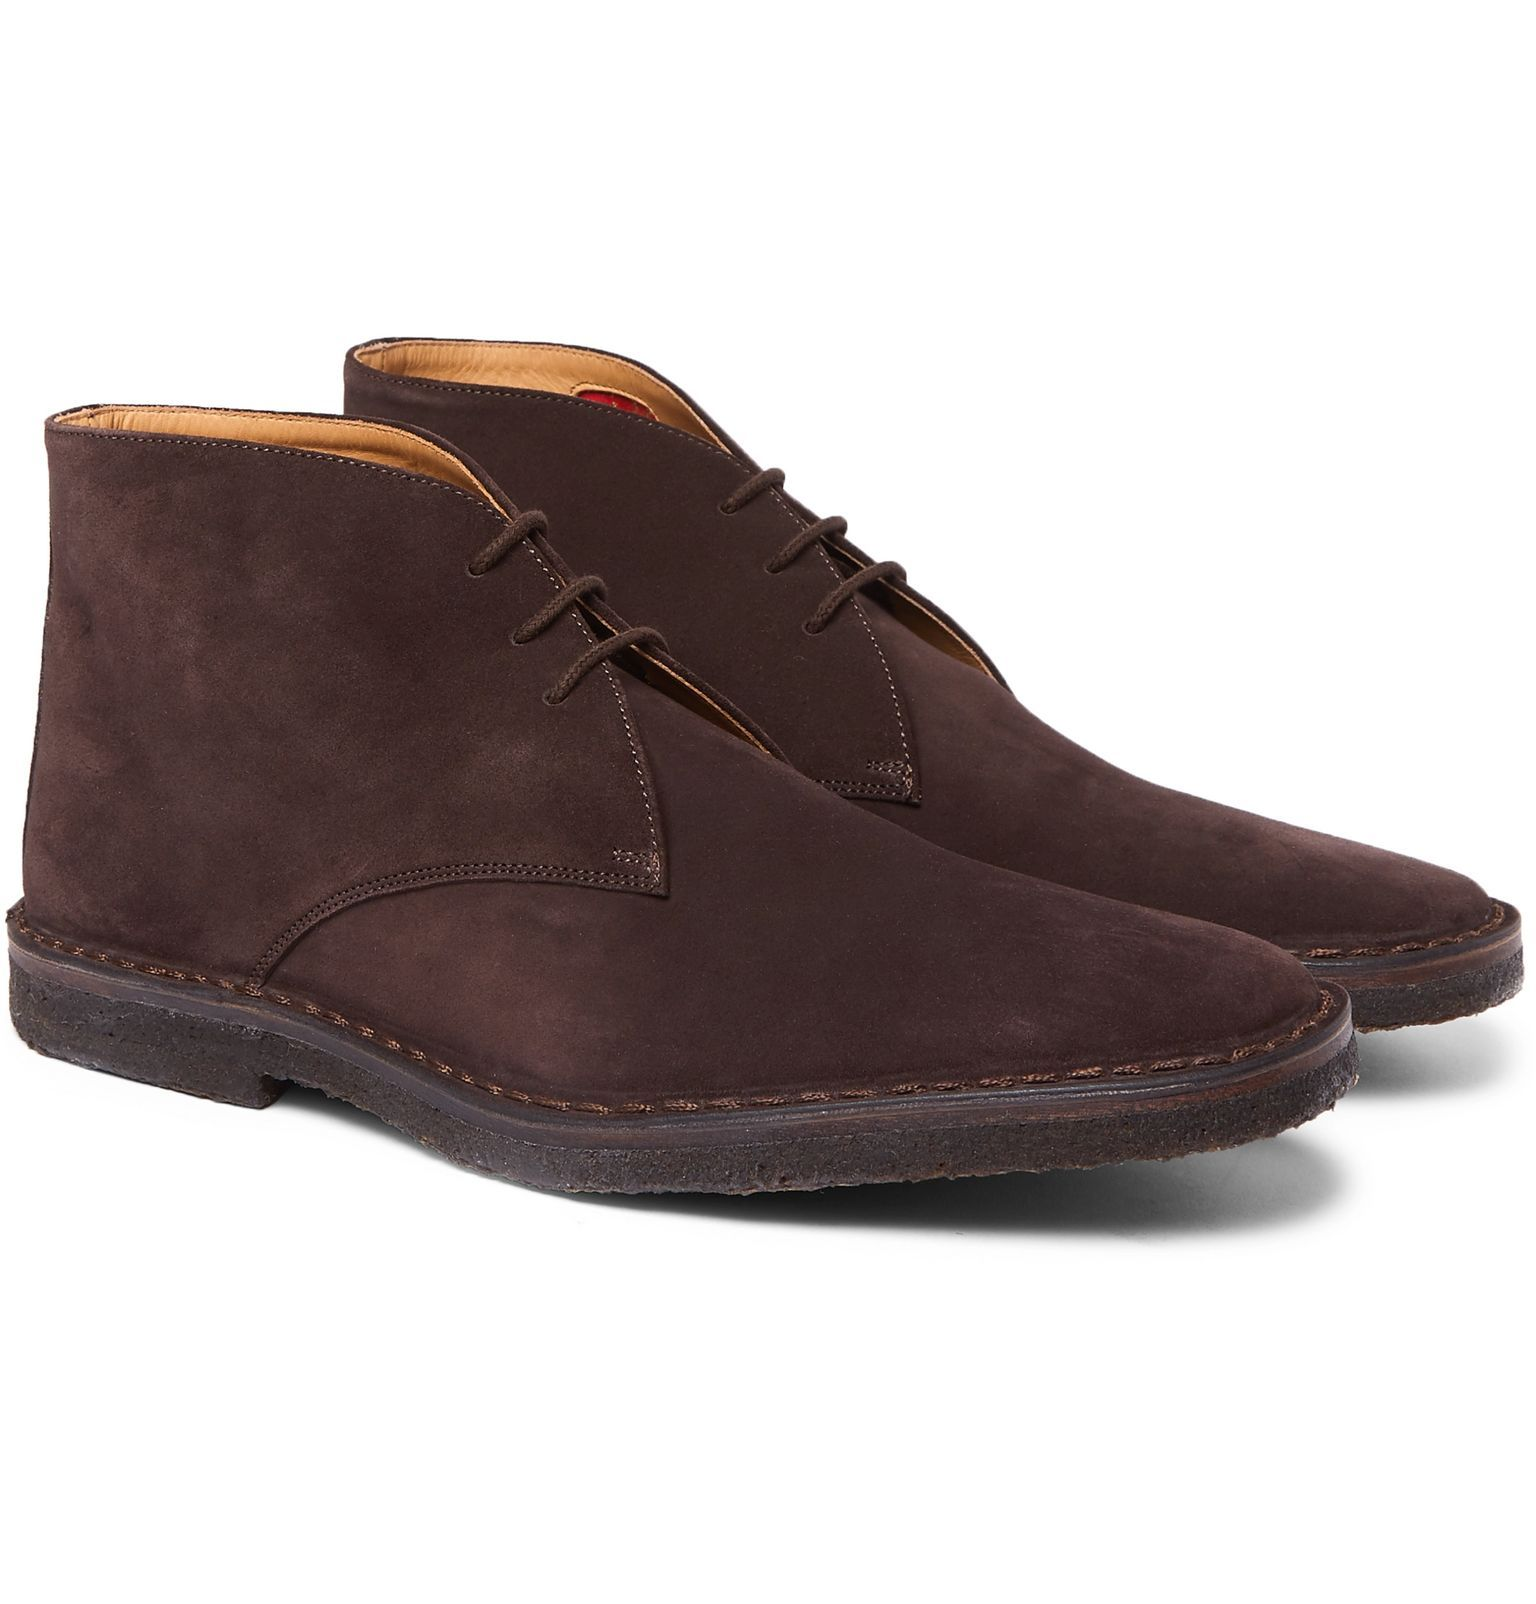 Photo of Brown Suede Desert Boots   Connolly